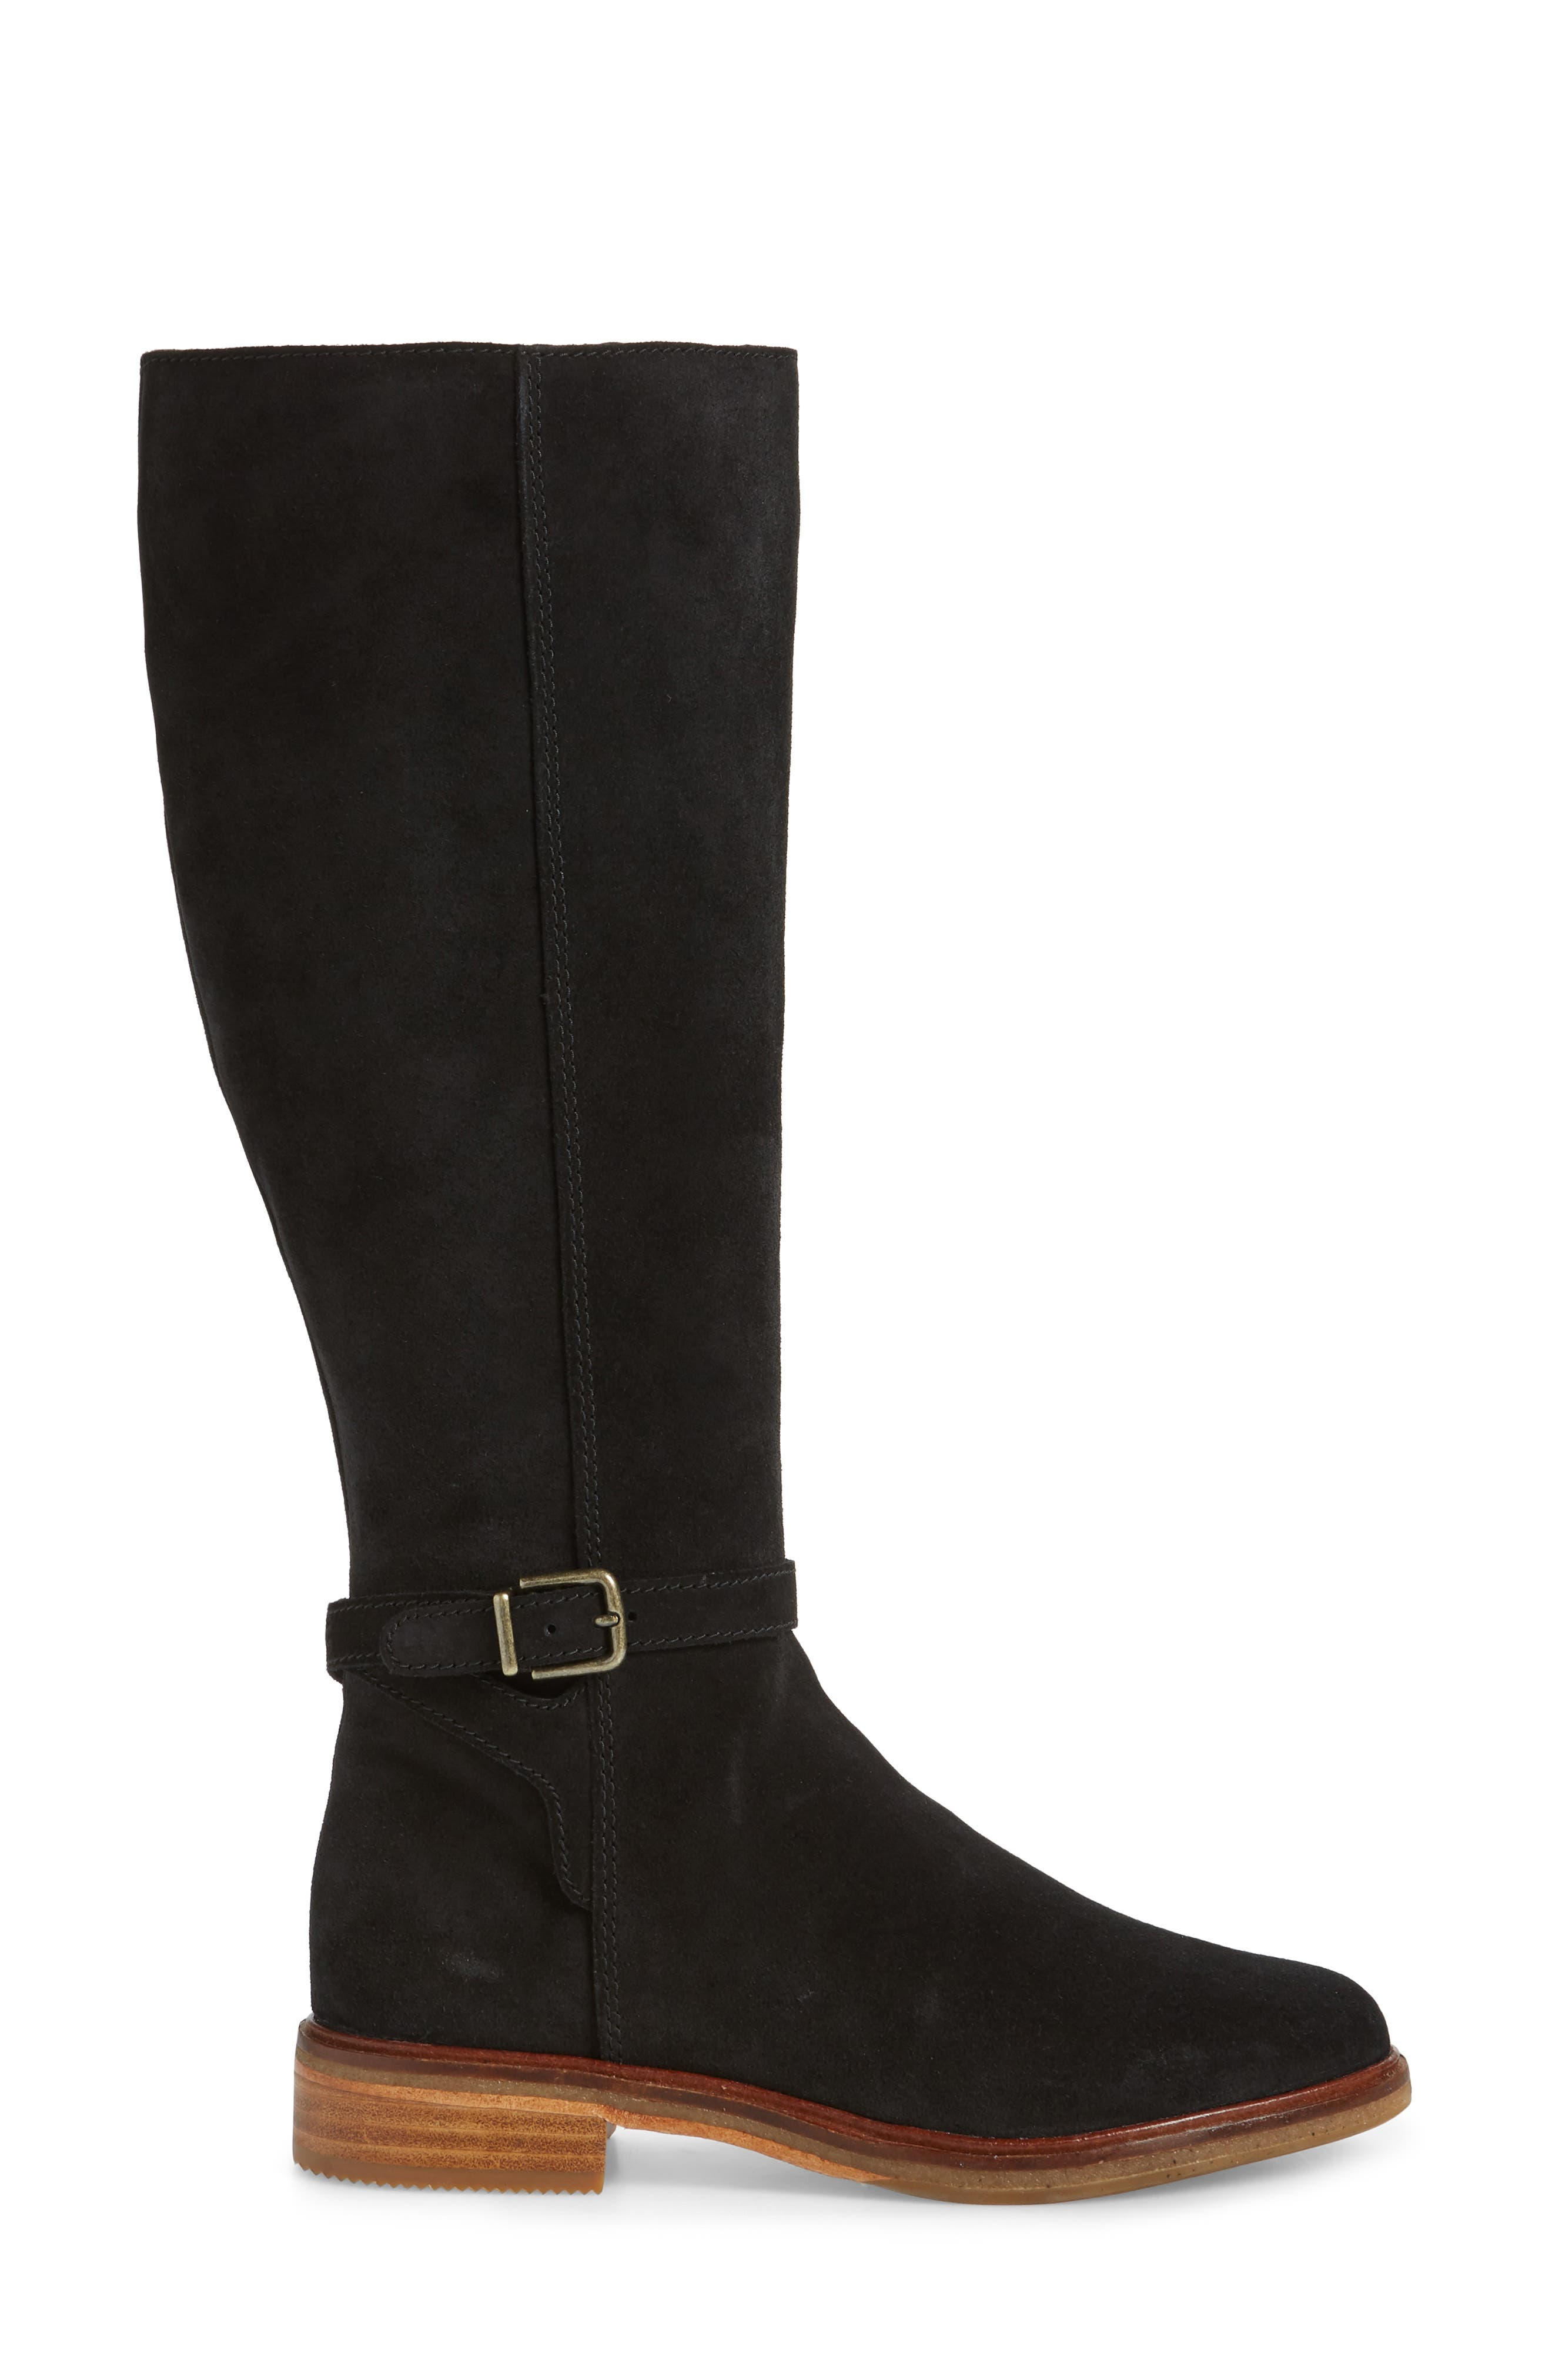 Clarkdale Clad Boot,                             Alternate thumbnail 3, color,                             BLACK SUEDE